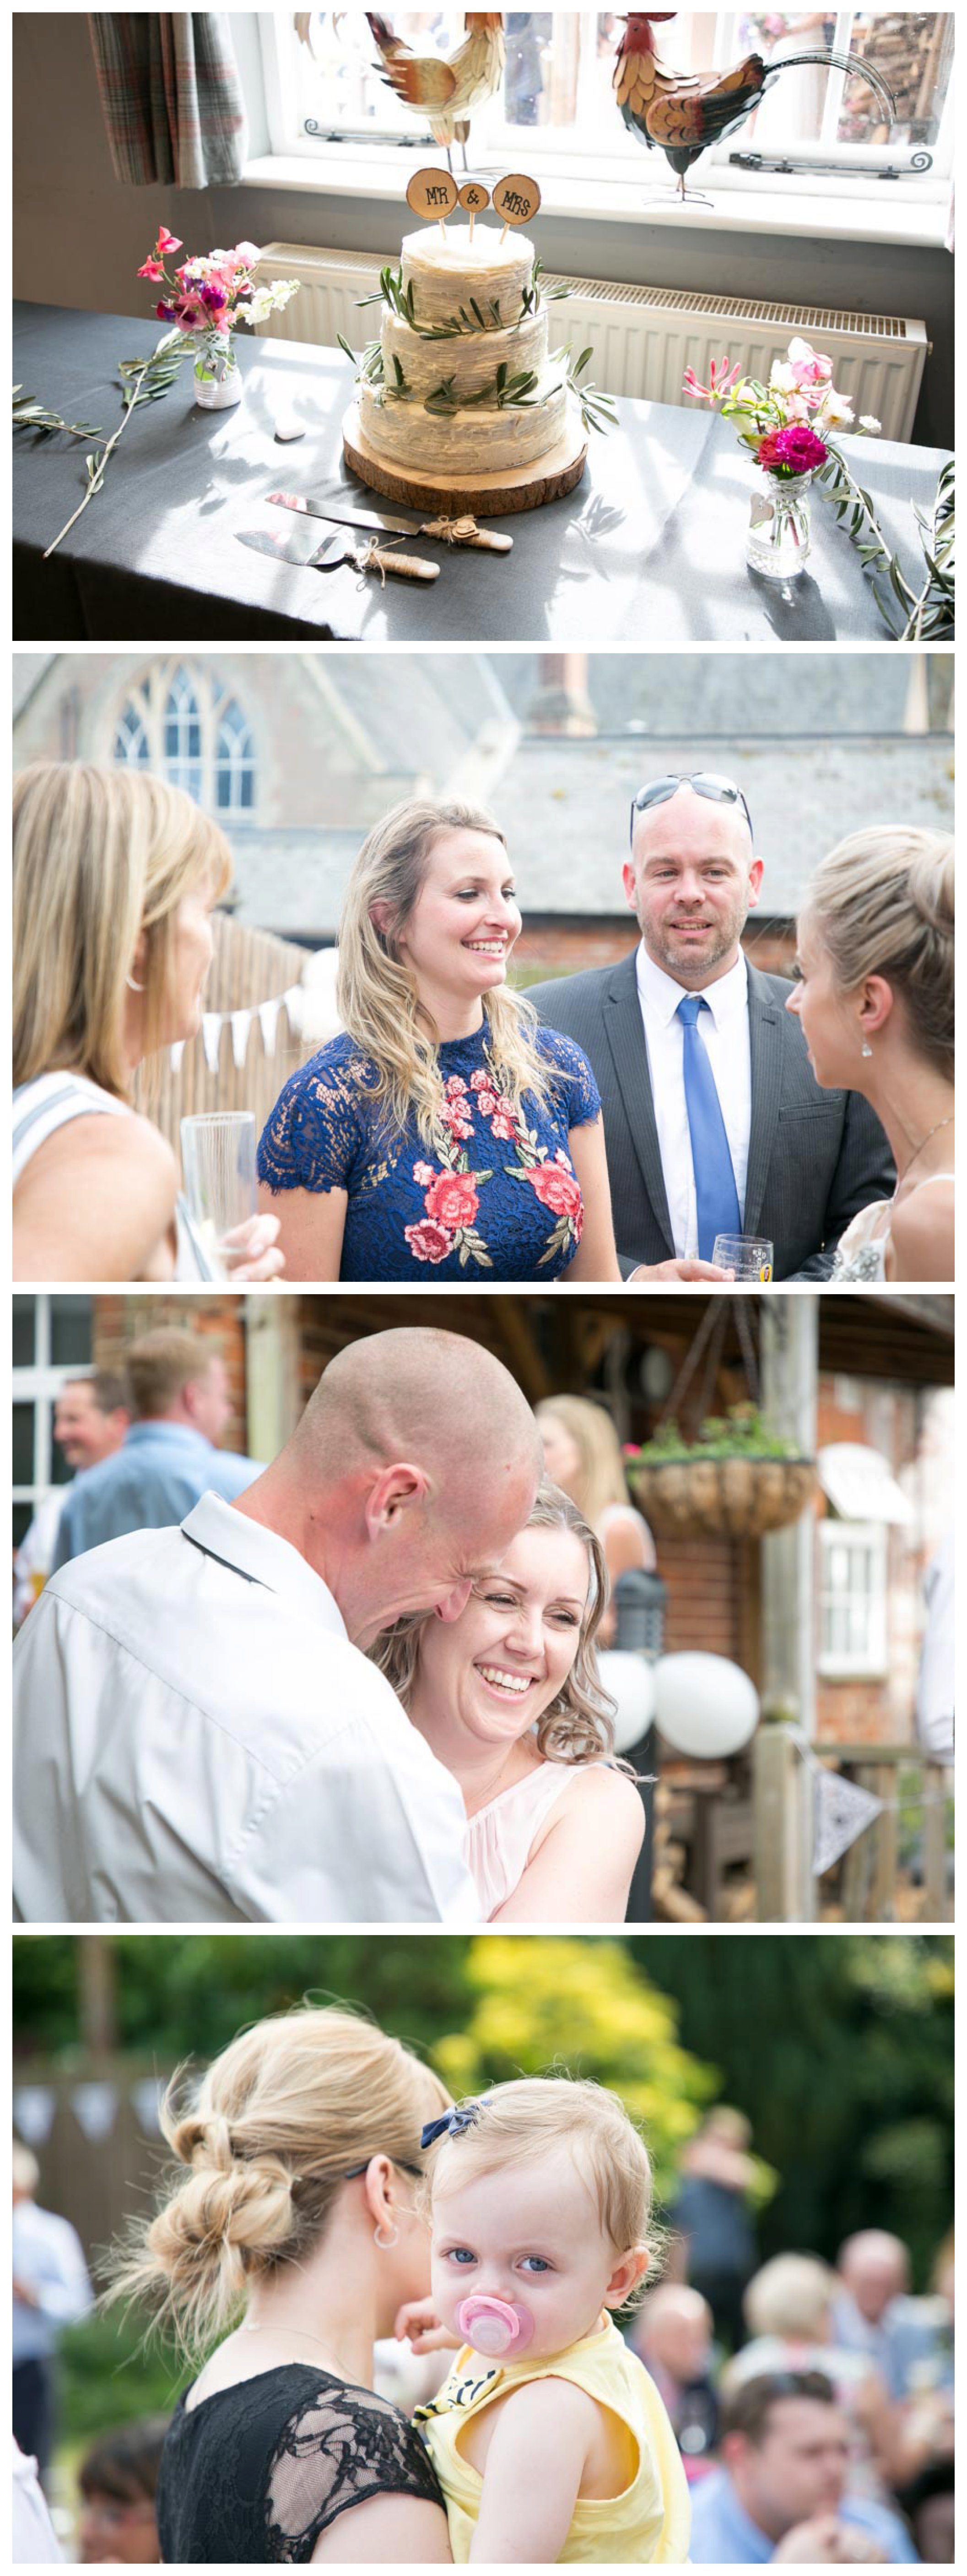 relaxed wedding reception photographs, people chatting, simple wedding cake